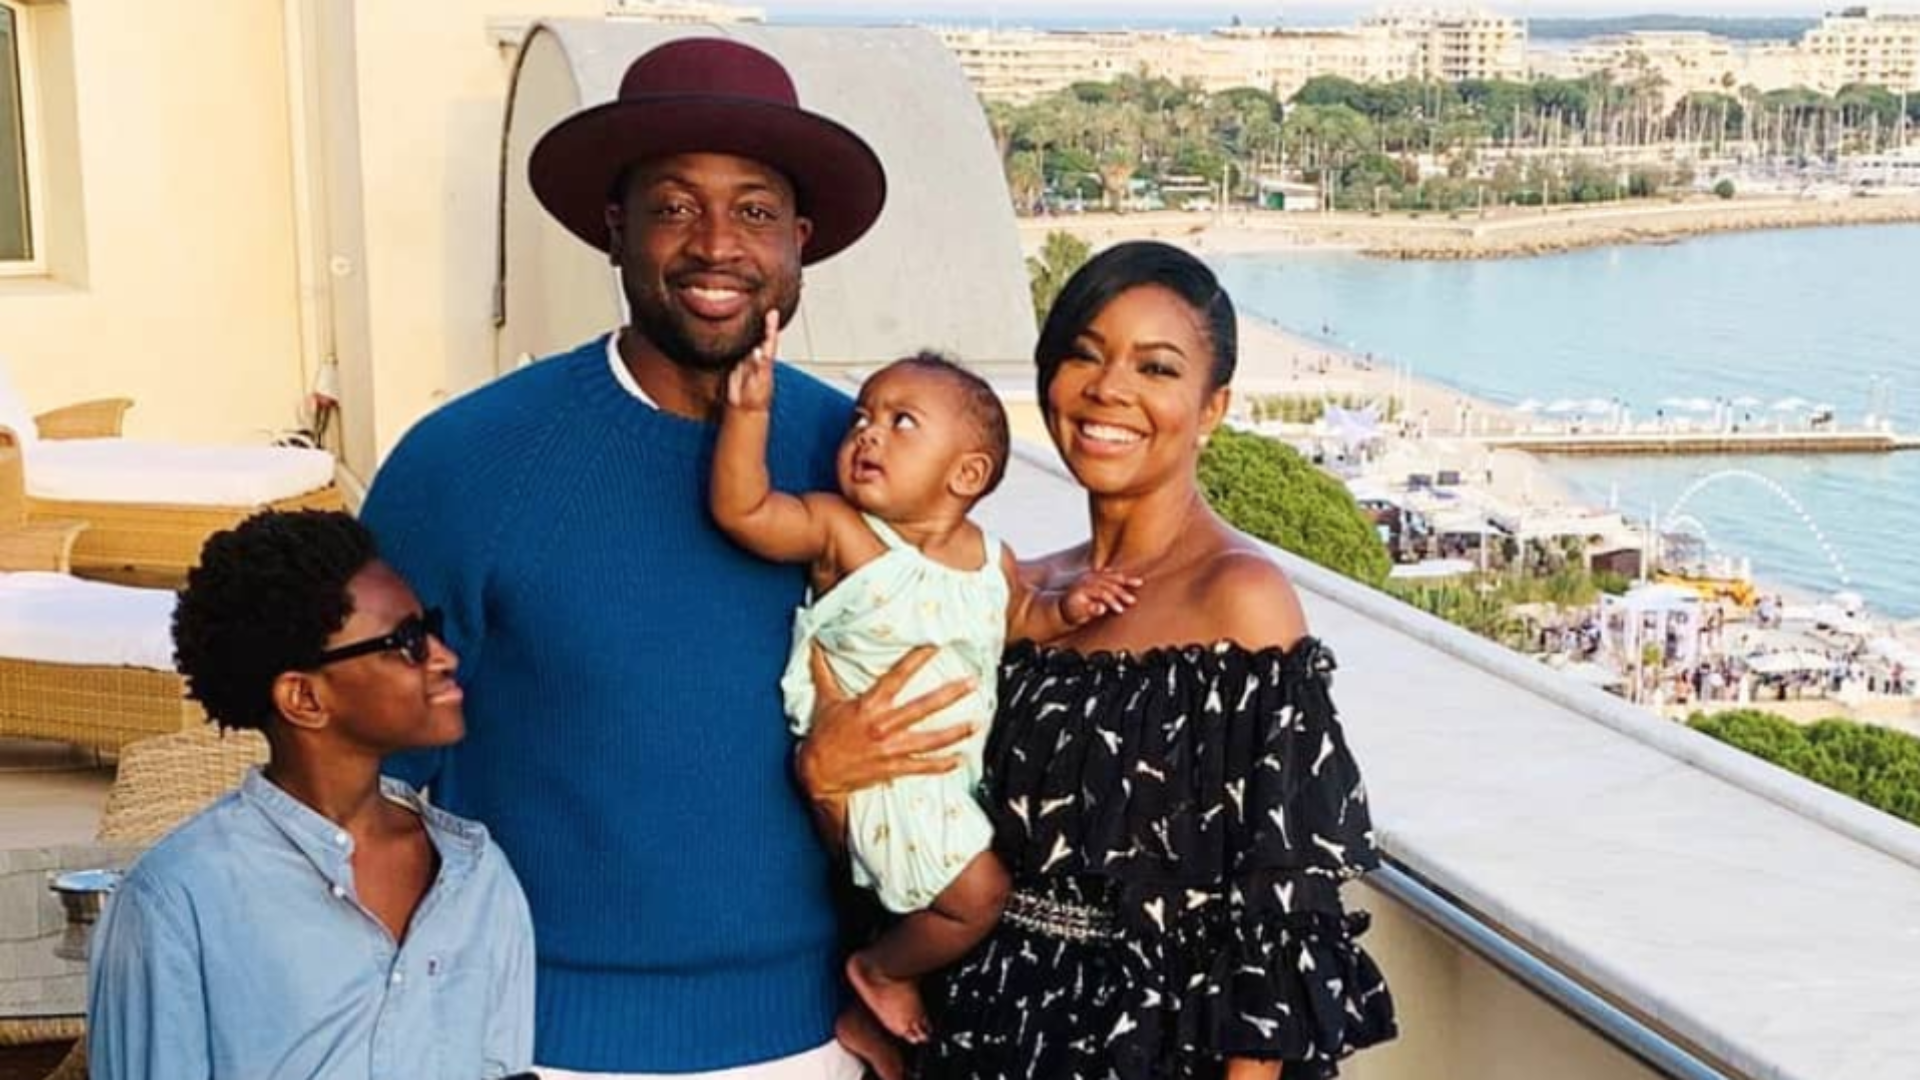 Gabrielle Union Is The Happiest On Her Vacay With Dwyane Wade – See The Gorgeous Photos